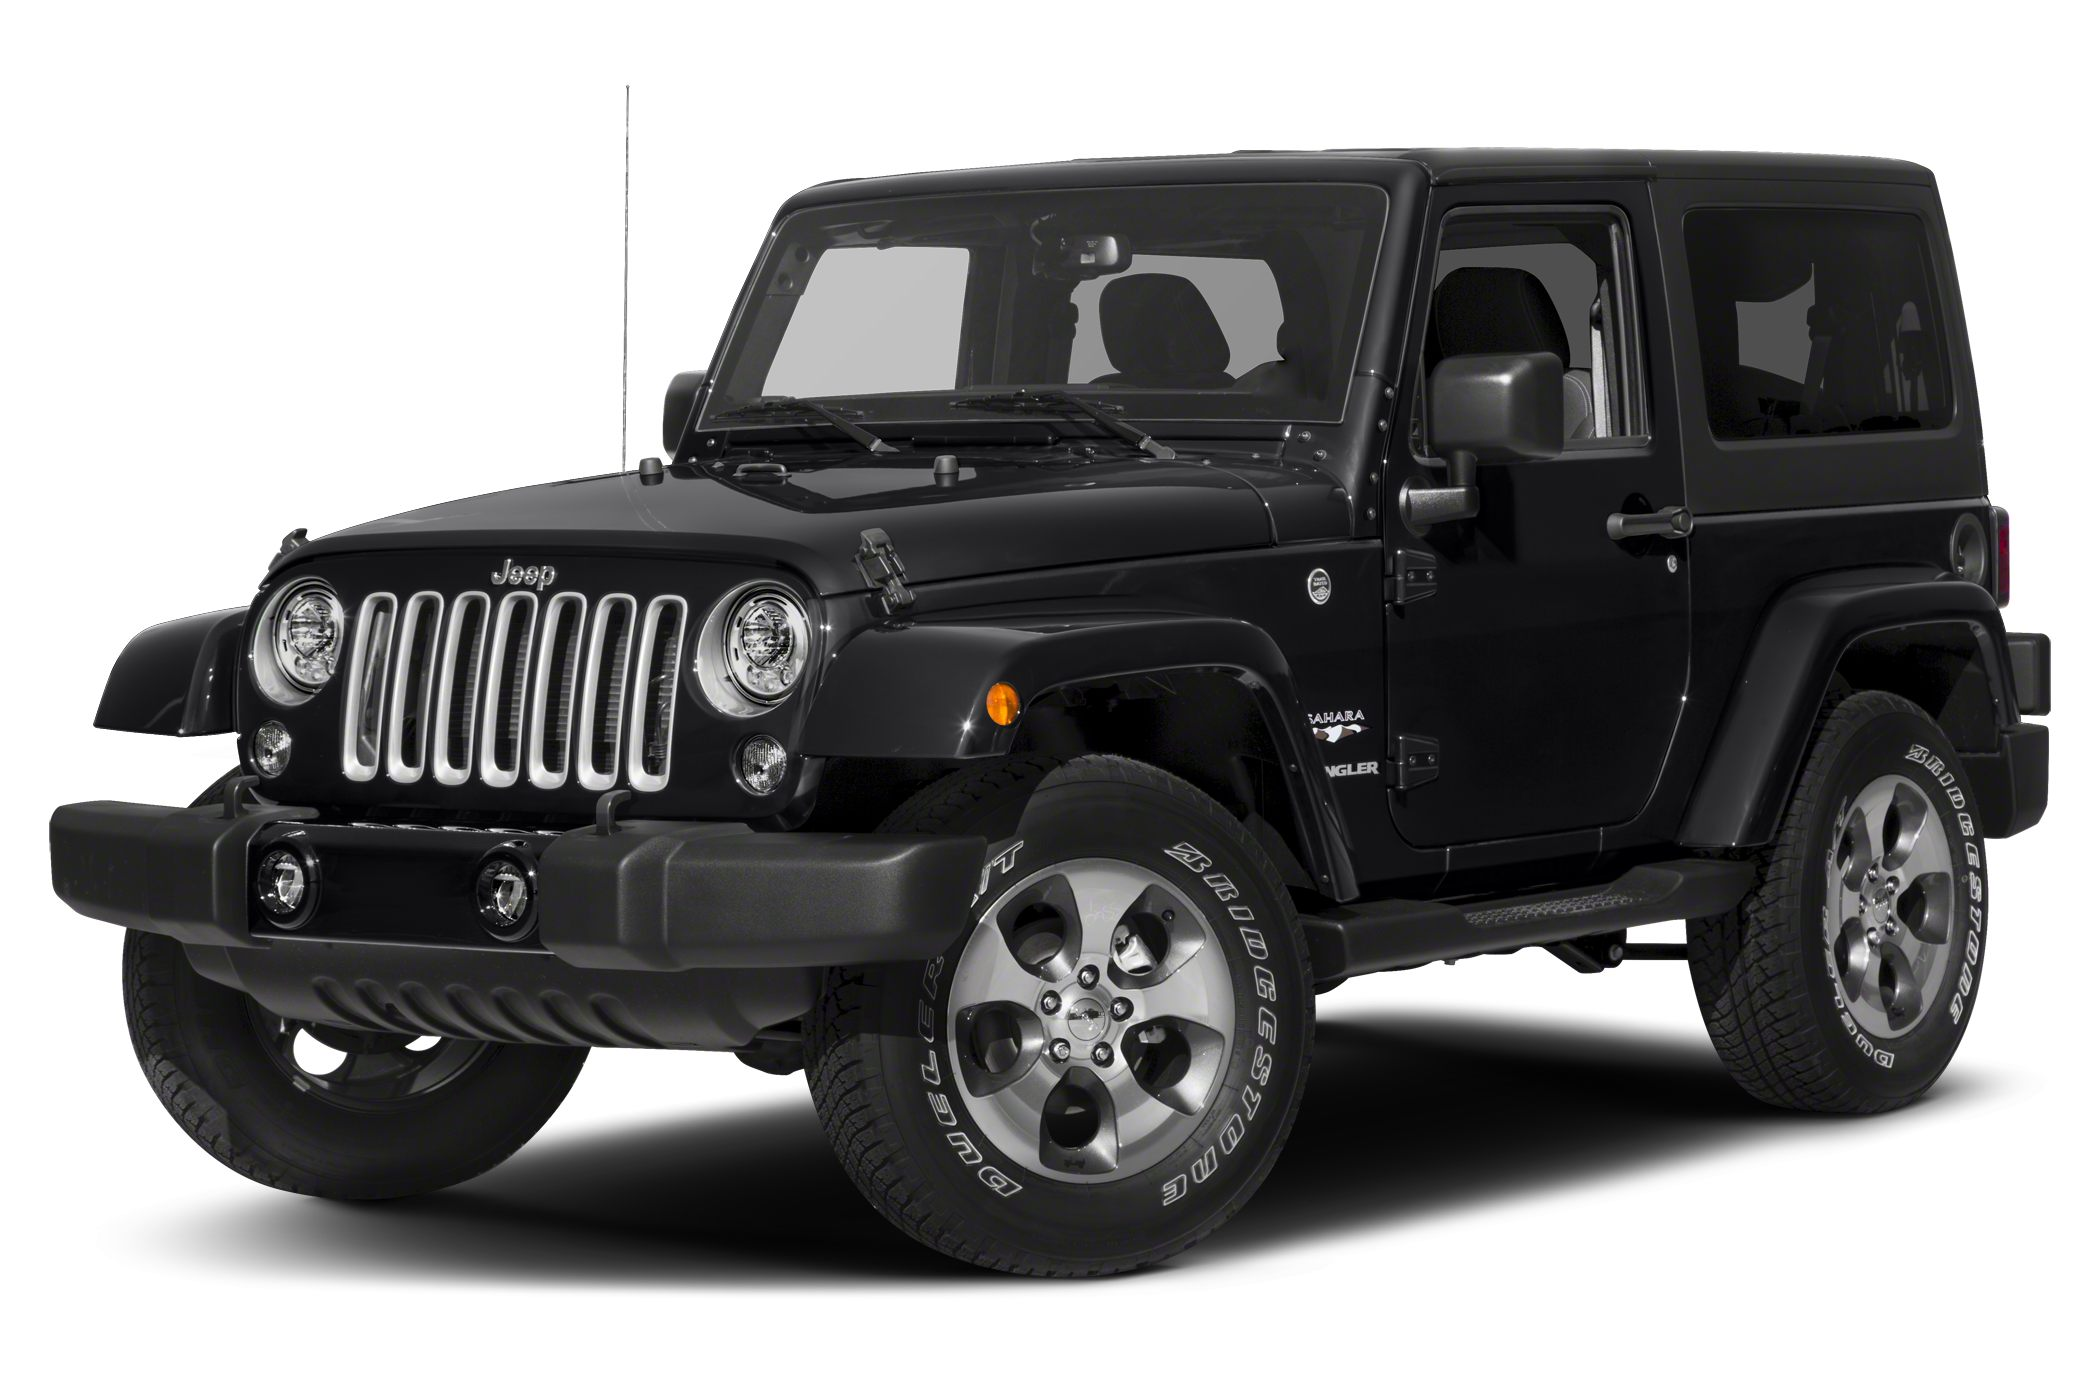 2012 Jeep Wrangler For Sale >> 2017 Jeep Wrangler Reviews, Specs and Prices | Cars.com